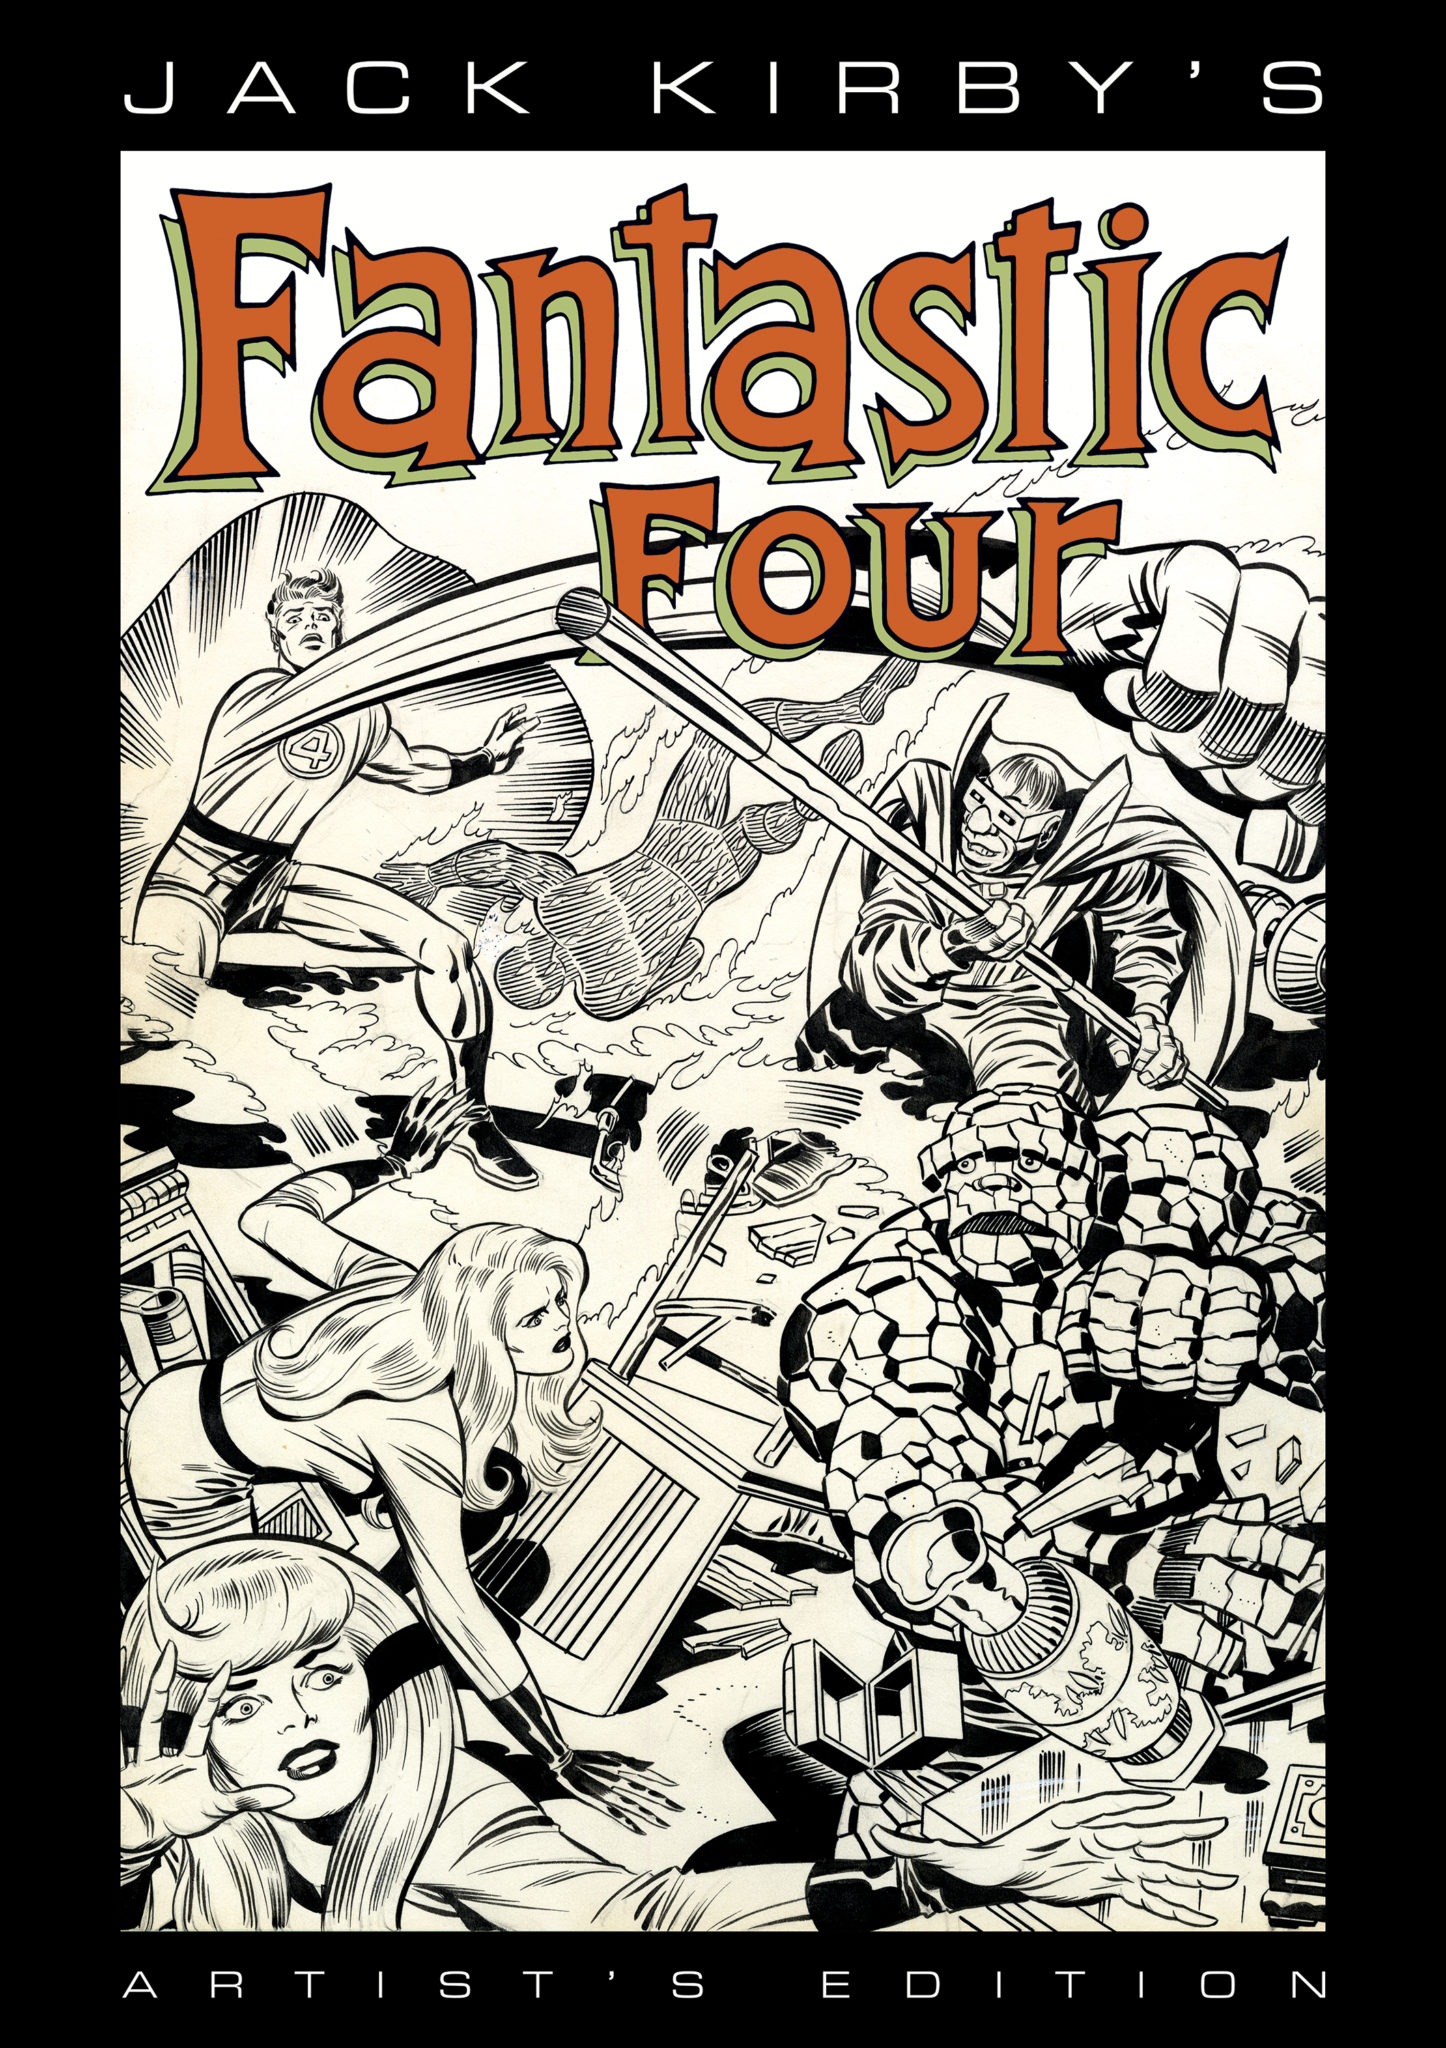 Jack Kirby's Fantastic Four Artist's Edition Announced At SDCC